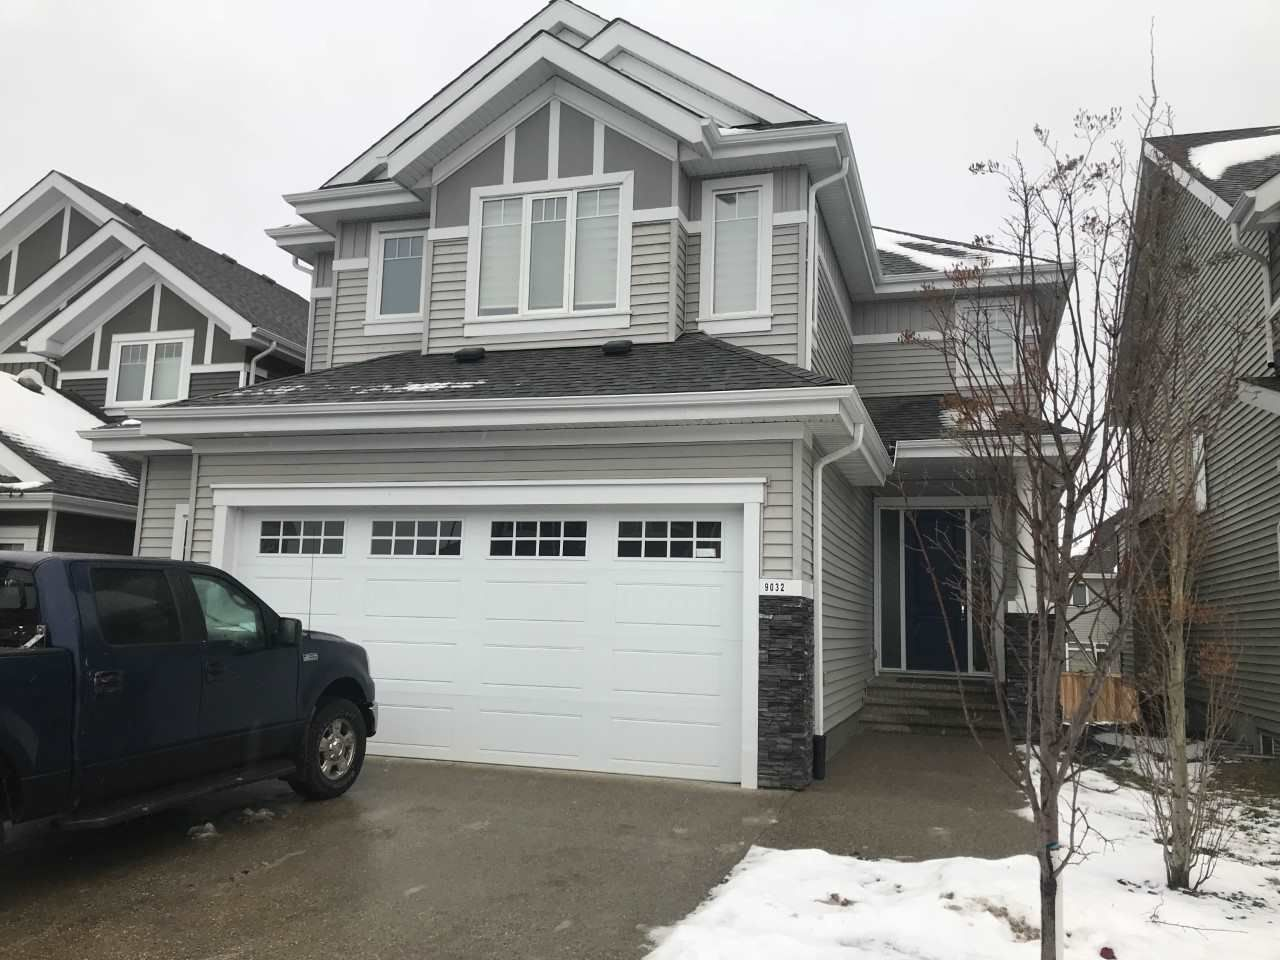 Main Photo: 9032 24 ave SW in Edmonton: Zone 53 House for sale : MLS®# E4137258